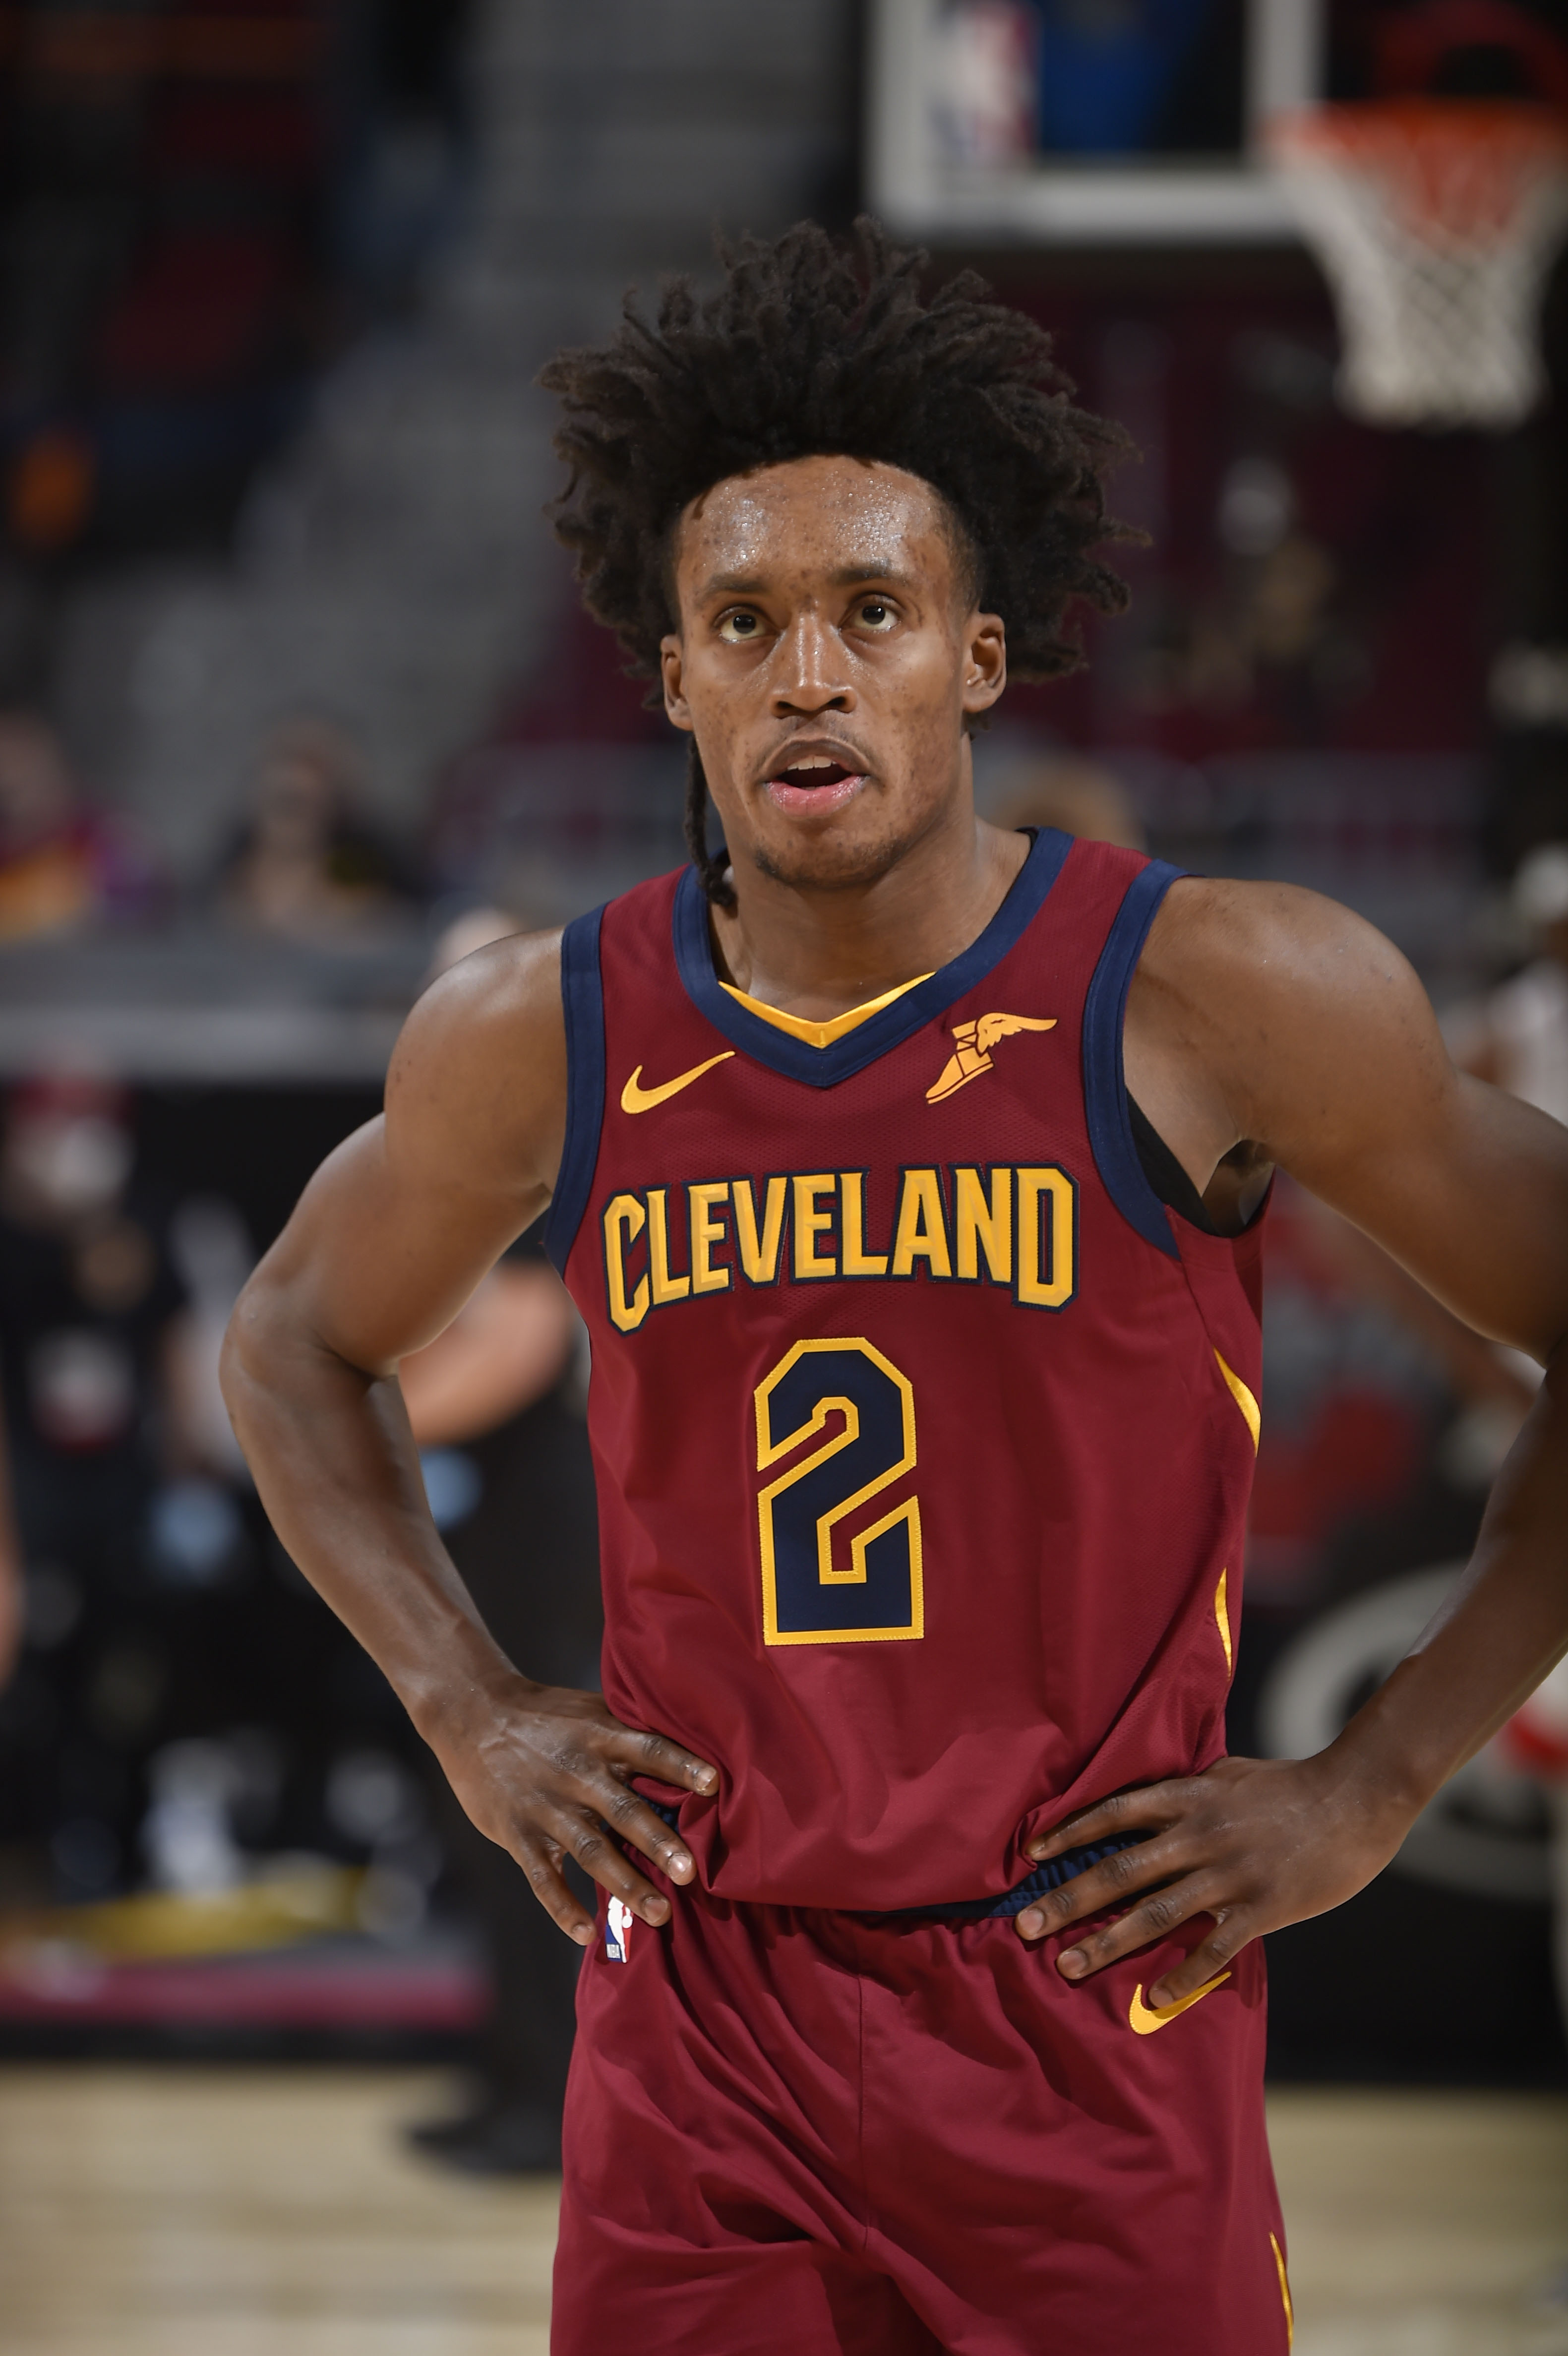 Collin Sexto of the Cleveland Cavaliers looks on during the game against the Houston Rockets on February 24, 2021 at Rocket Mortgage FieldHouse in Cleveland, Ohio.